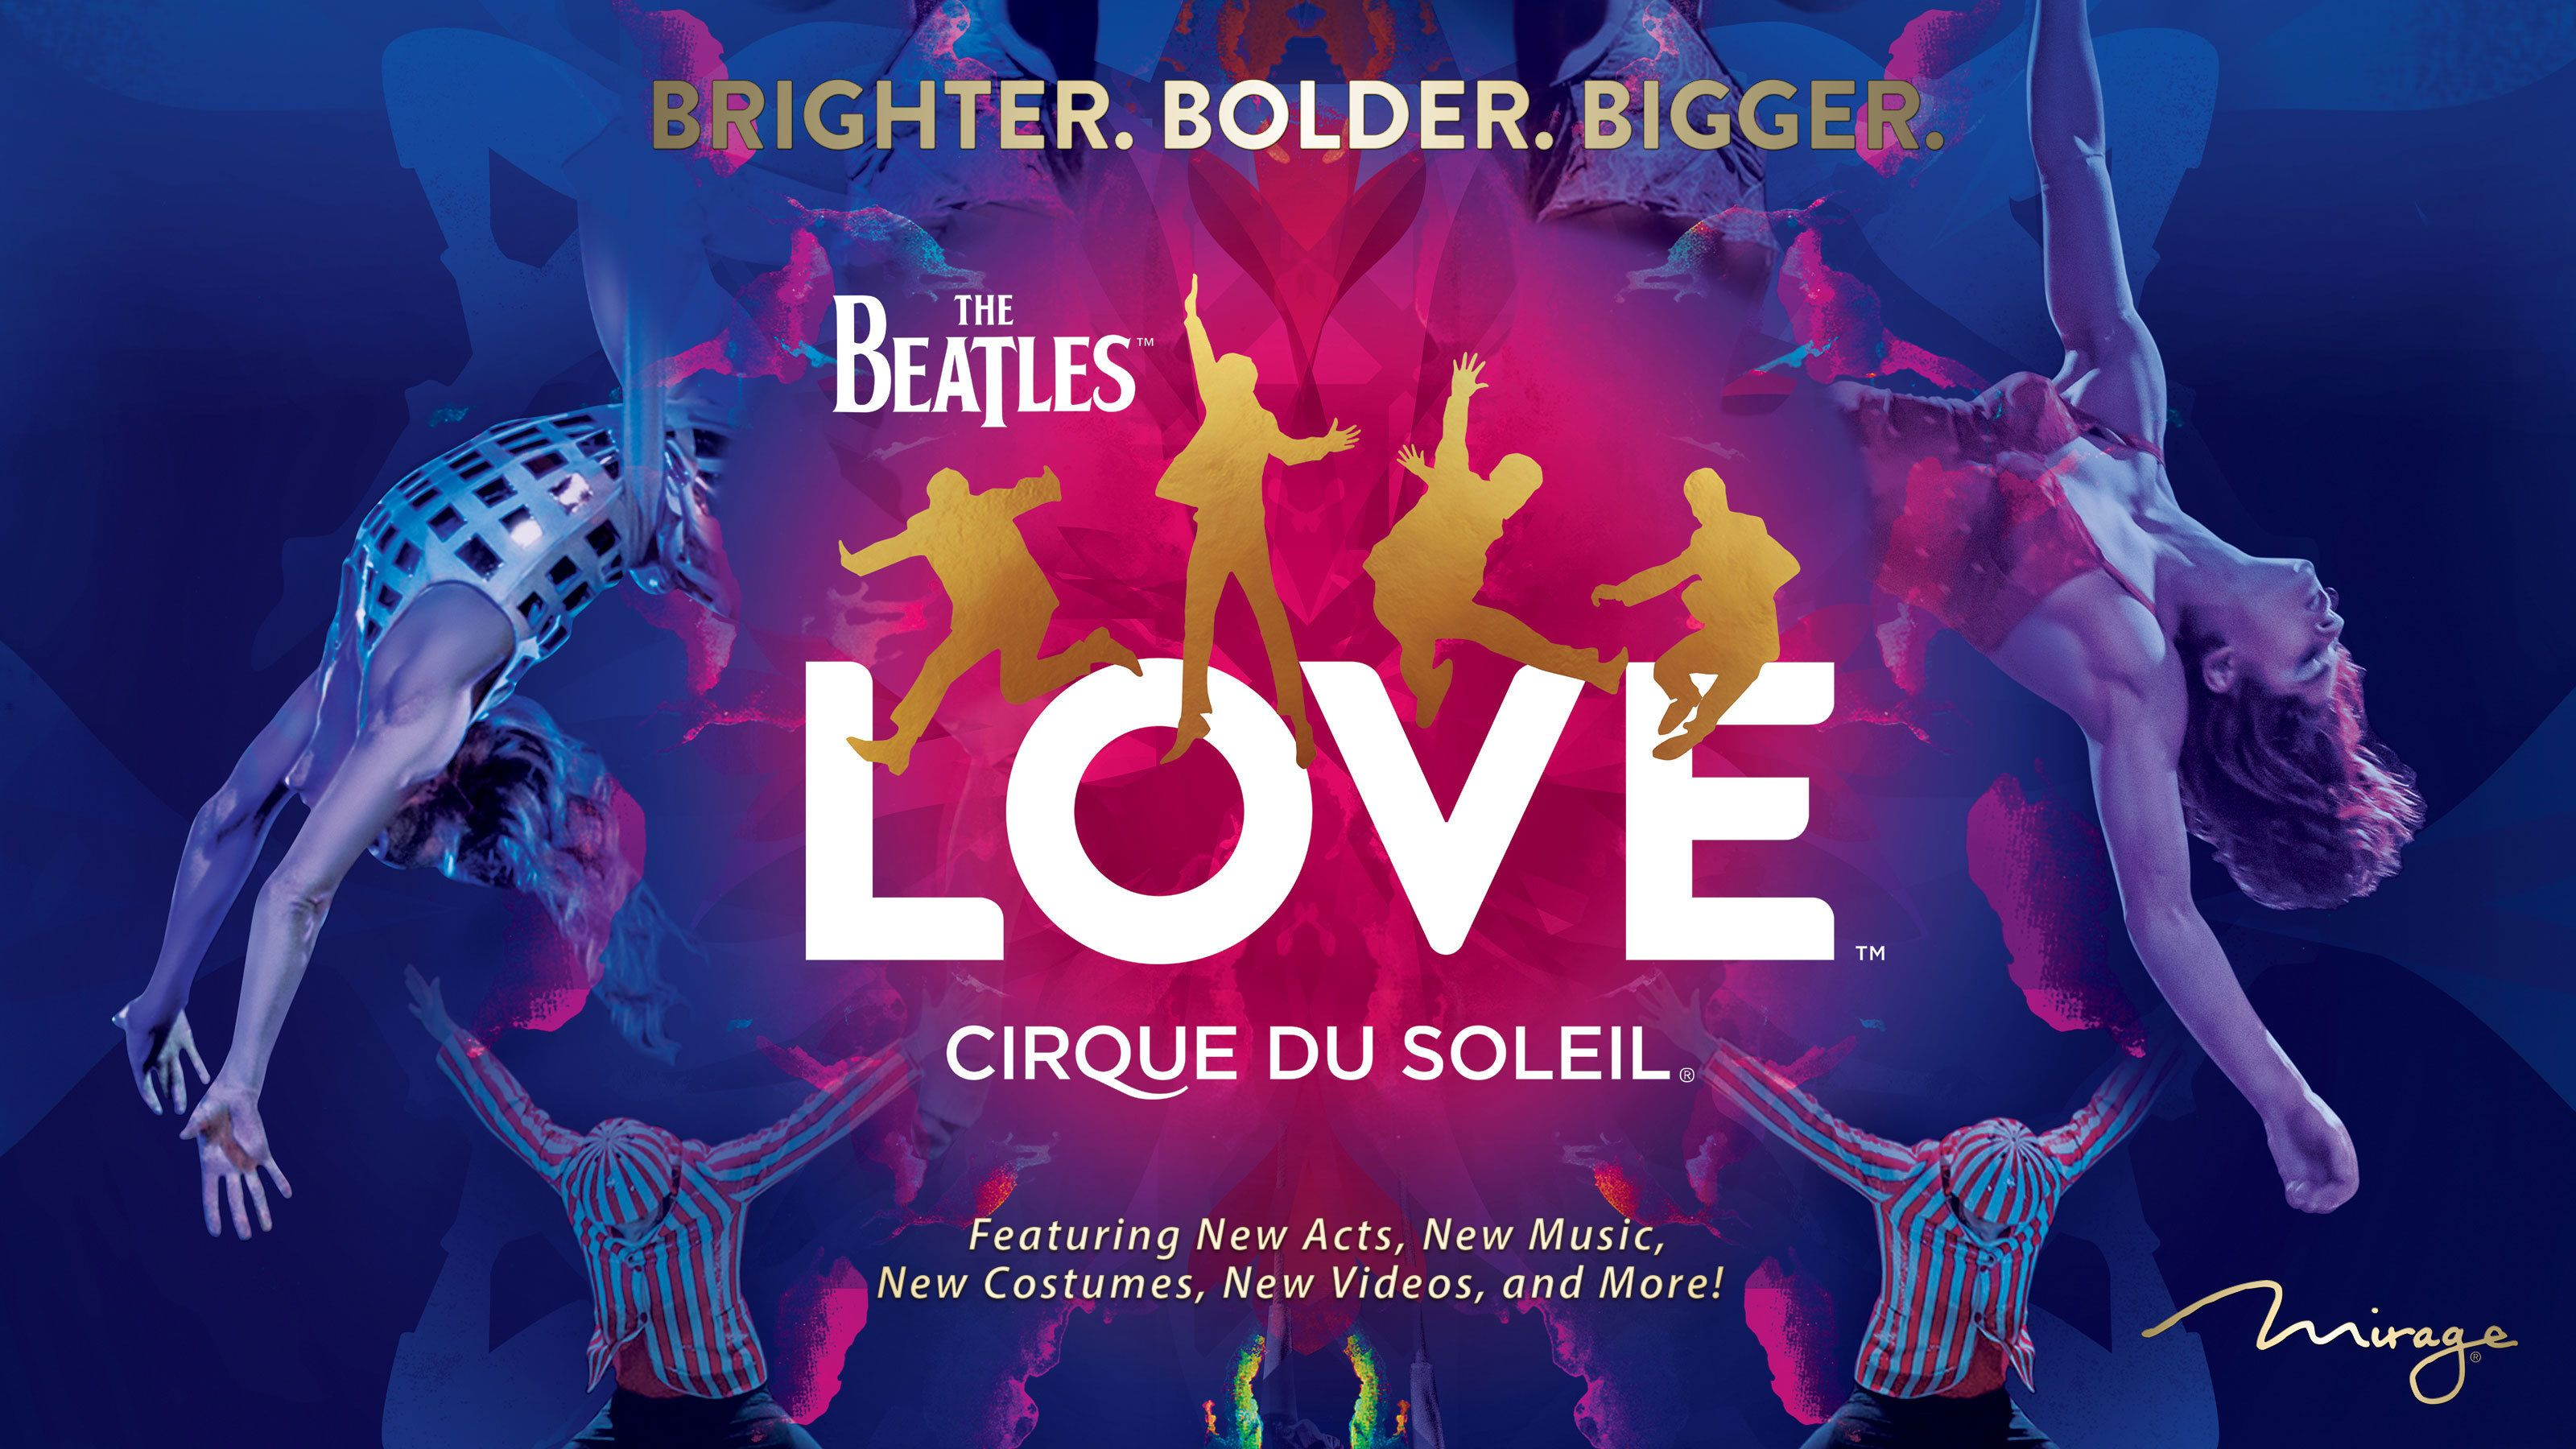 The Beatles® LOVETM by Cirque du Soleil®